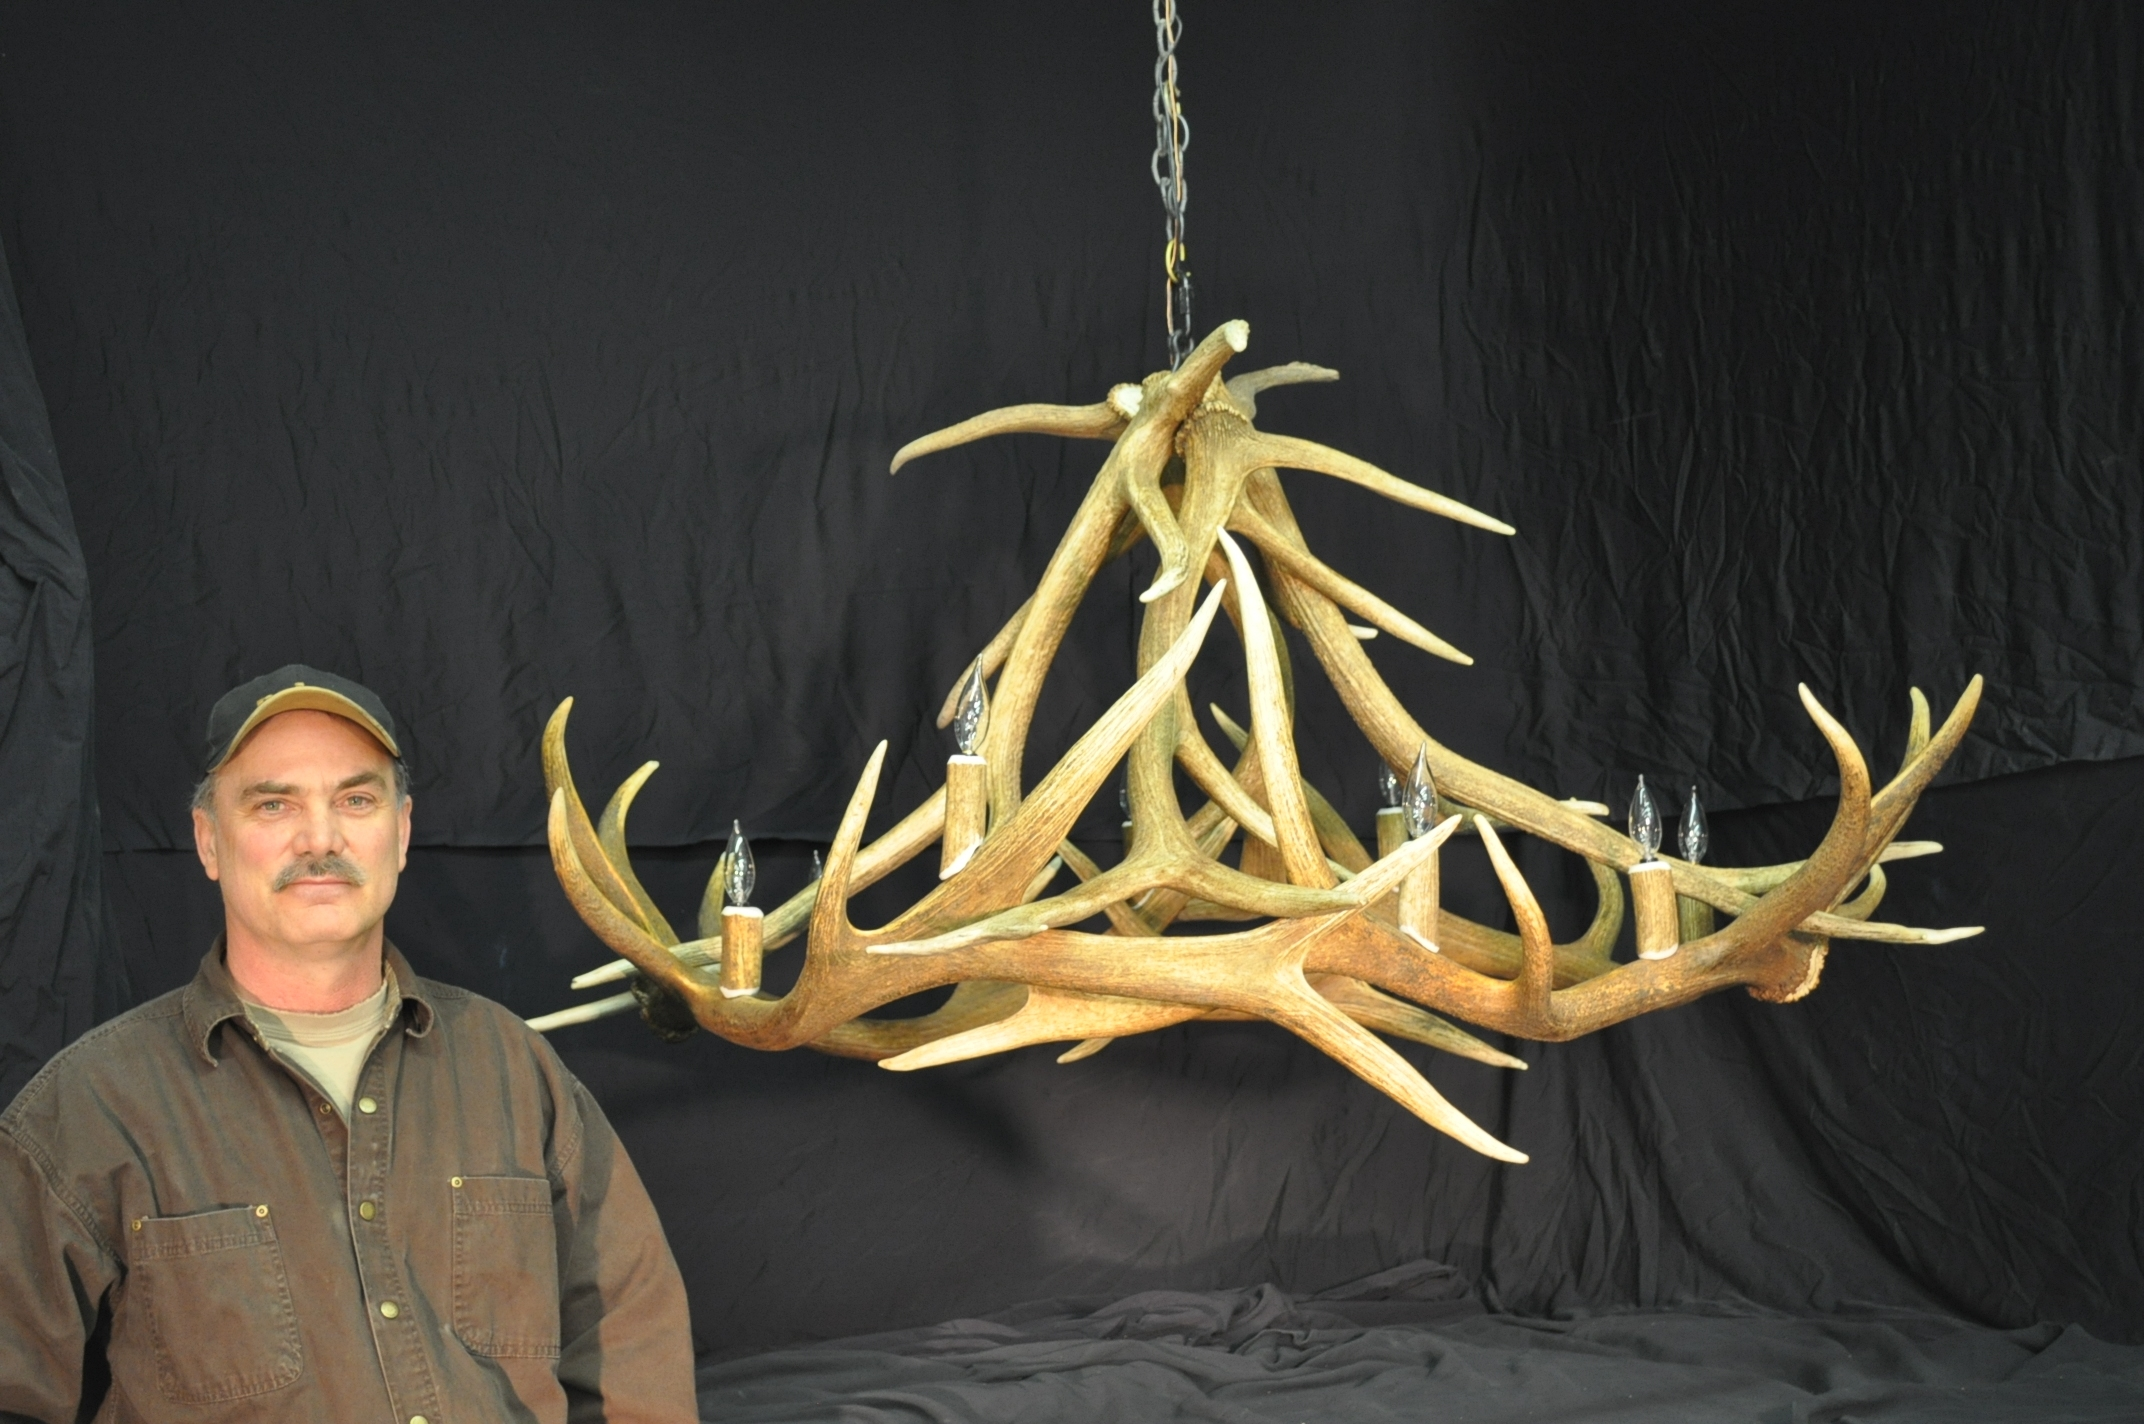 Hand Crafted Montana Antler Chandeliers Inside Antler Chandeliers And Lighting (Image 9 of 15)